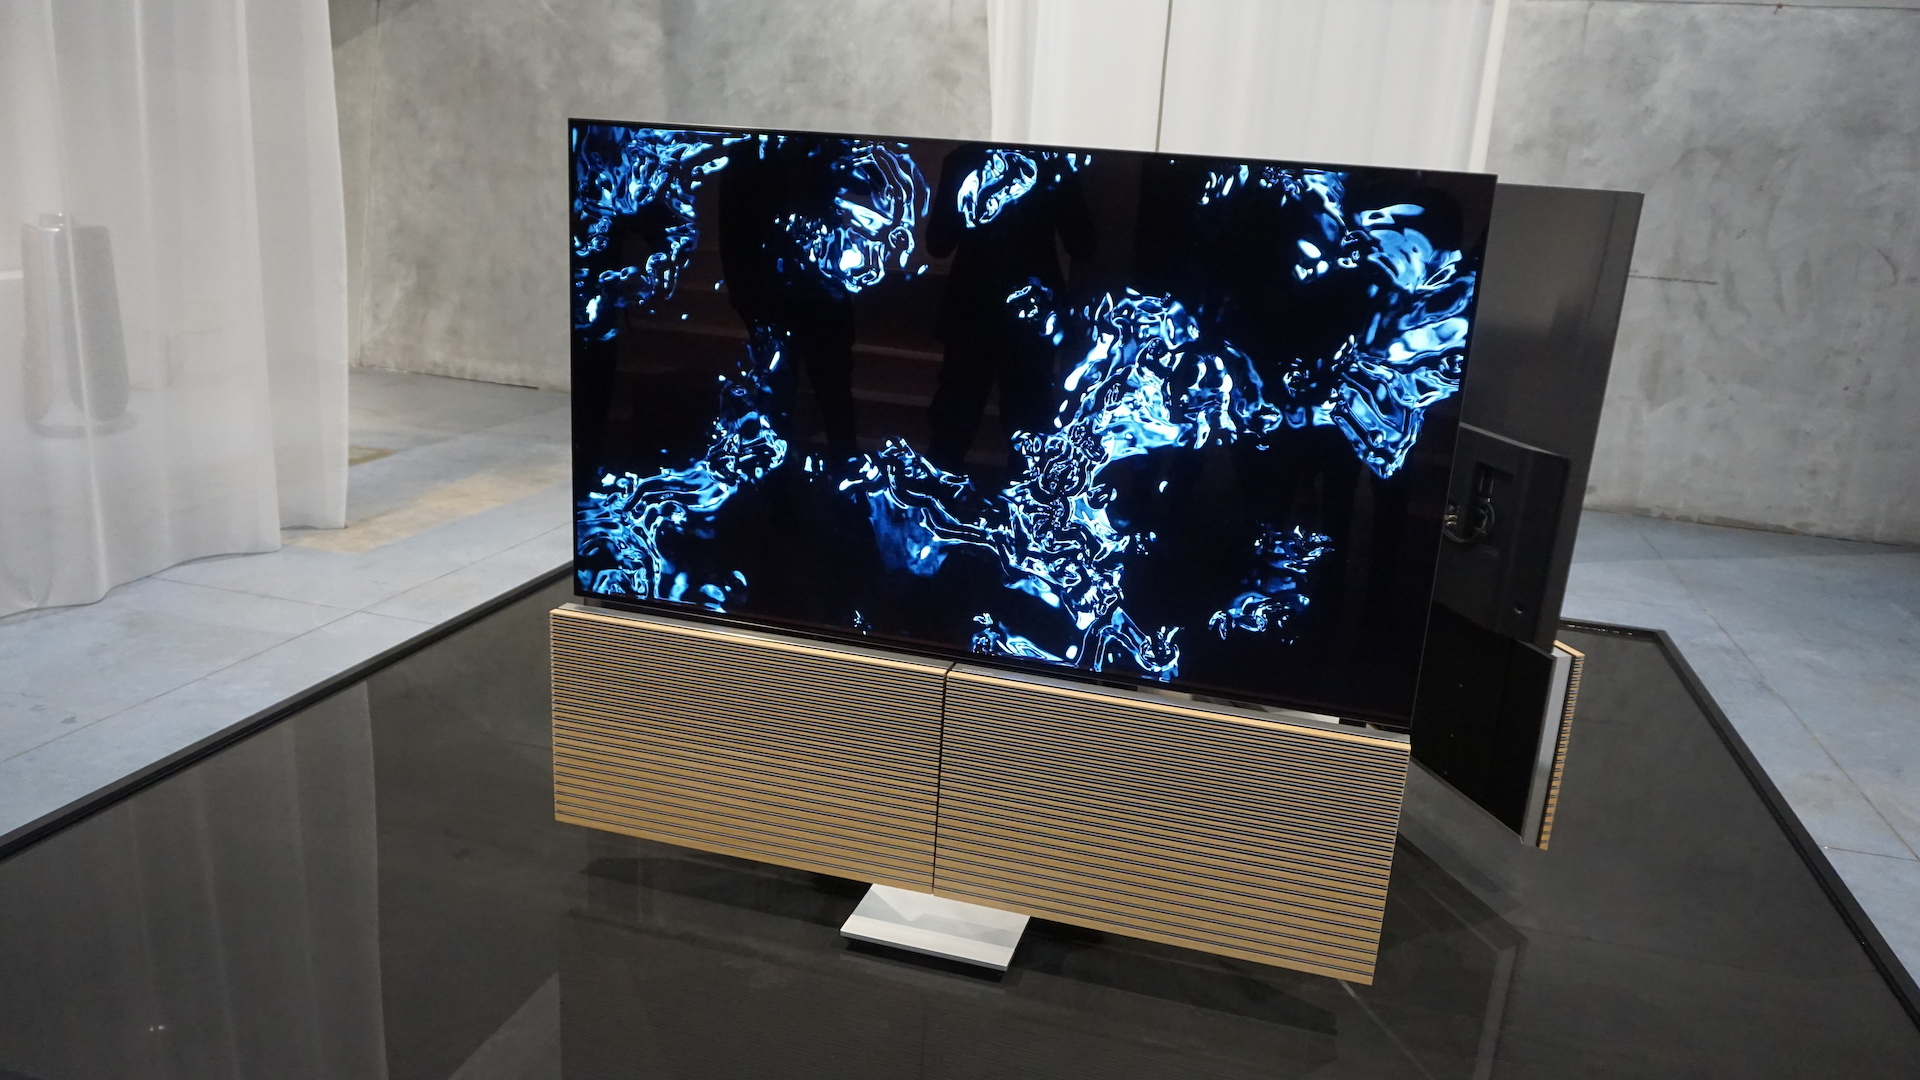 Bang And Olufsen Beovision 11 hands on: bang & olufsen beovision harmony review | techradar